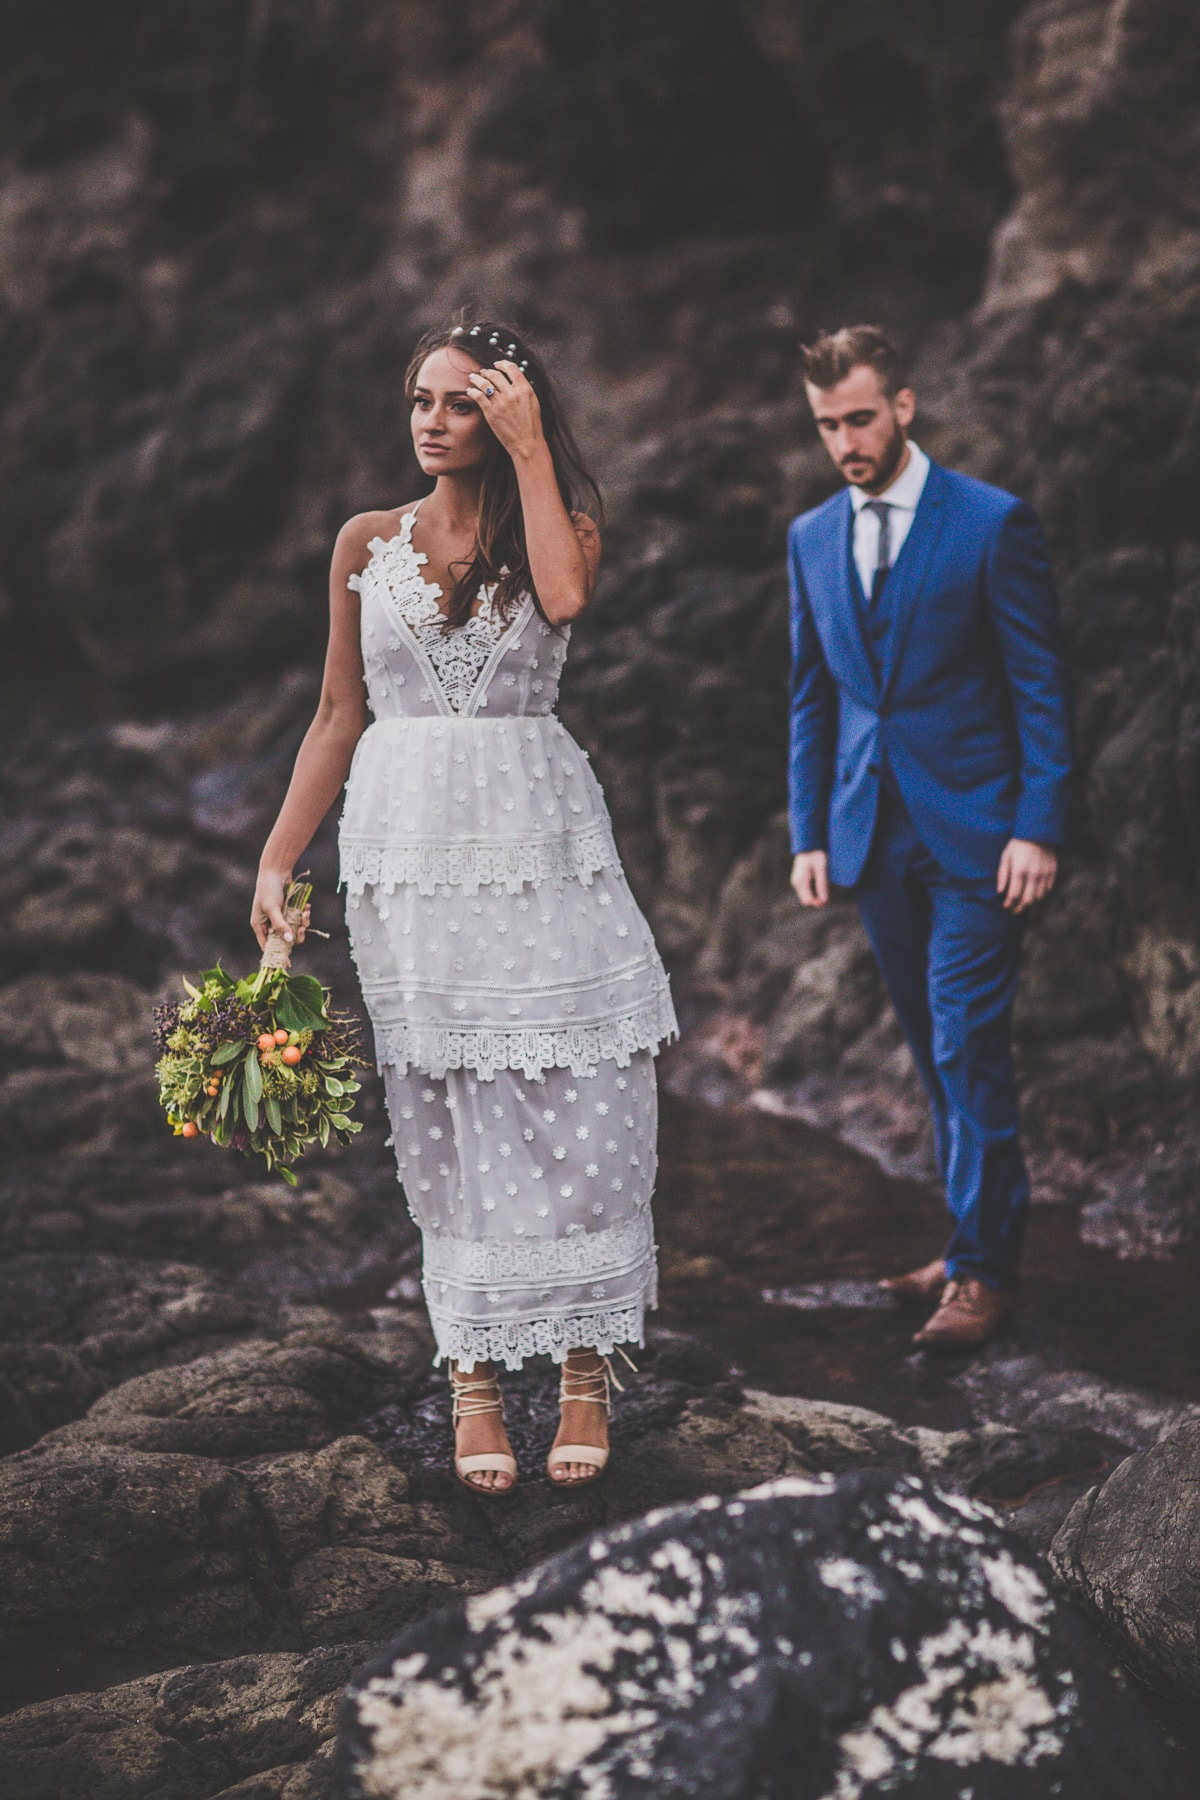 wedding portraits in melbourne - indie look photography in melbourne